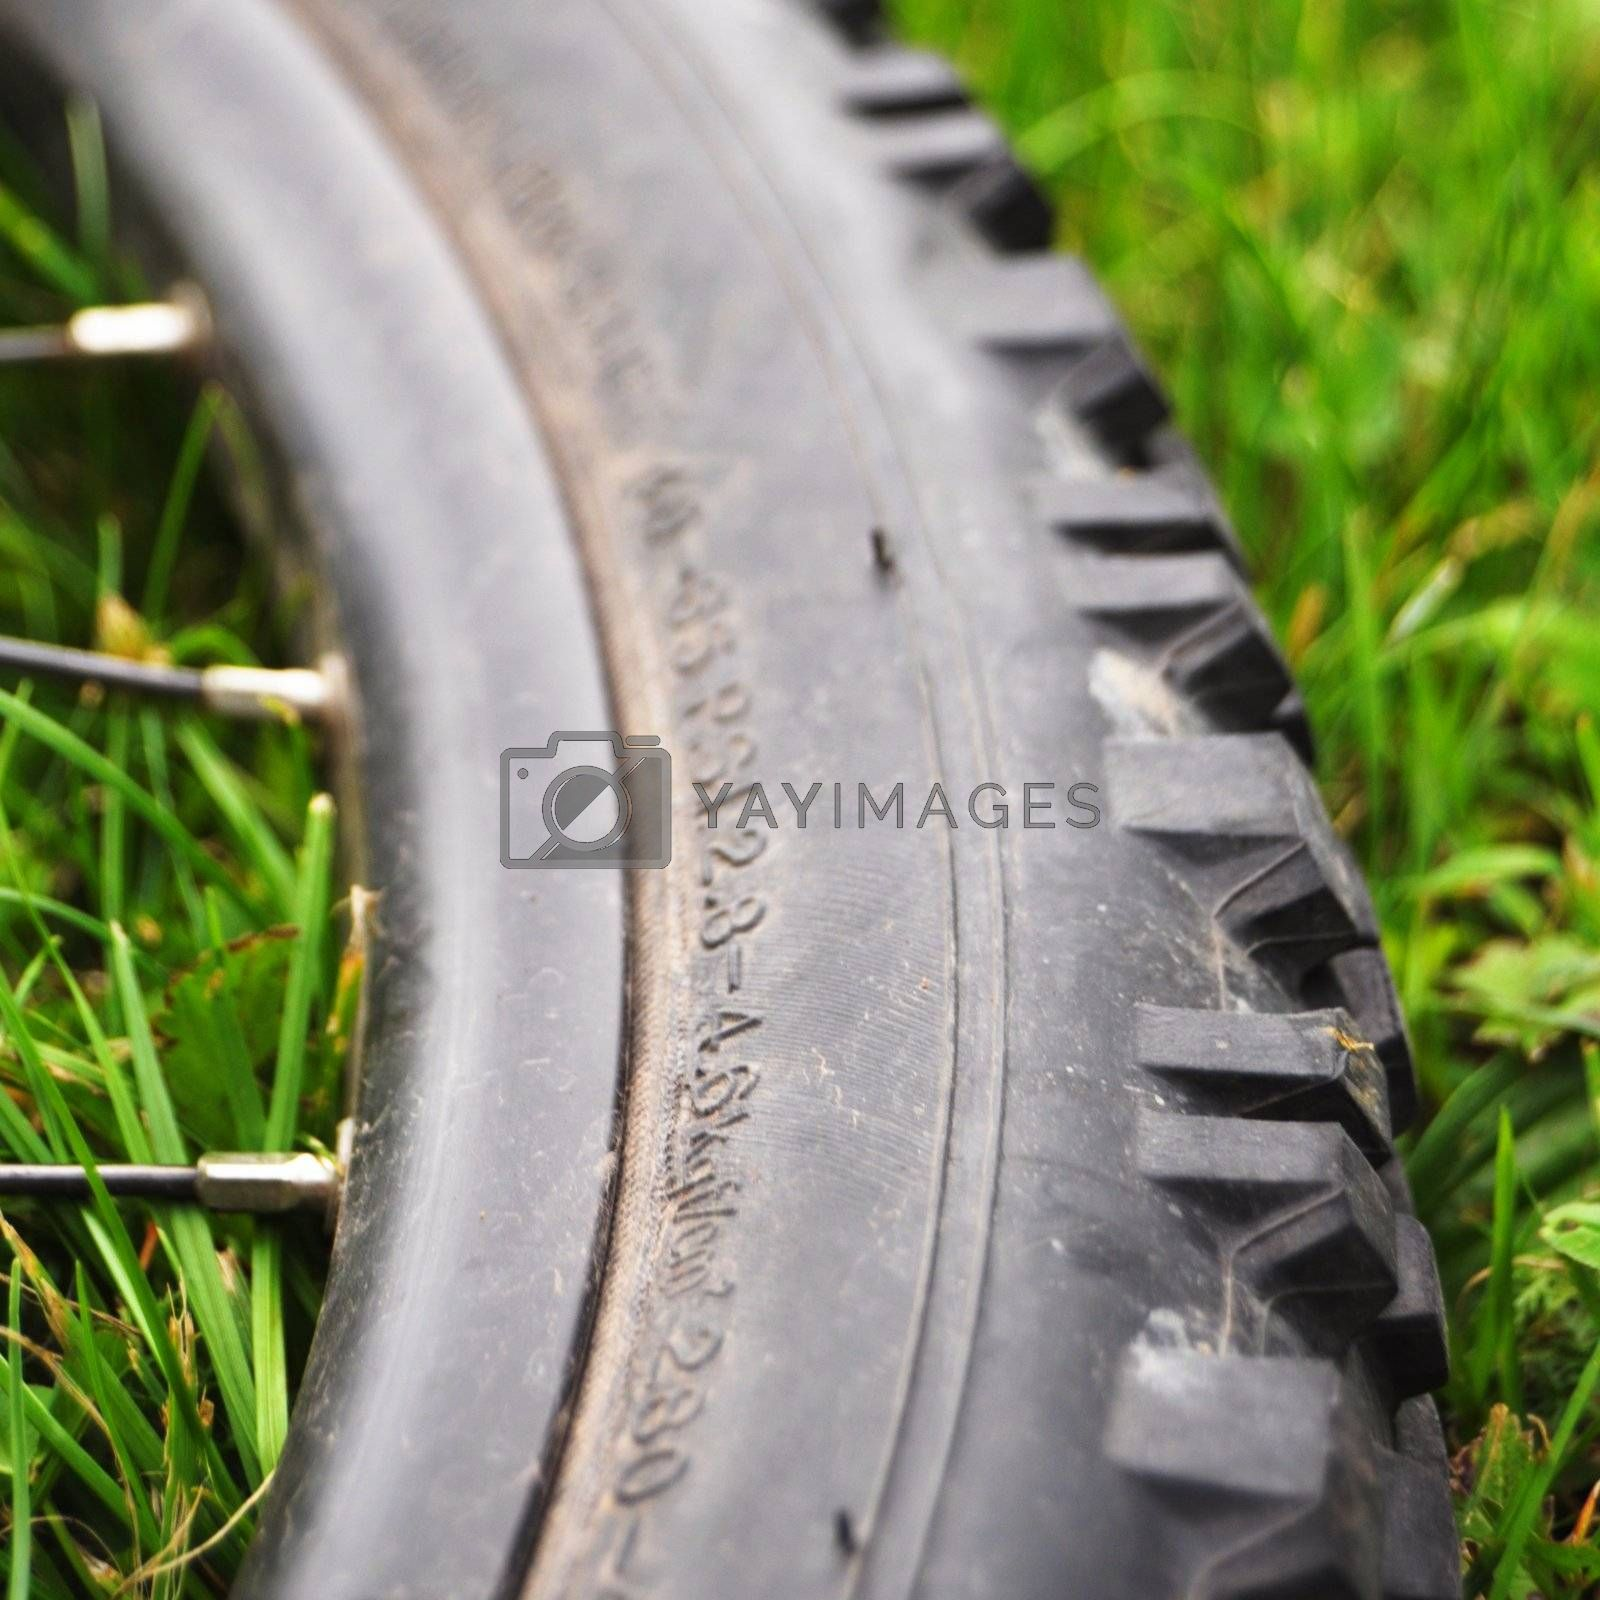 Royalty free image of mountain bike by gunnar3000